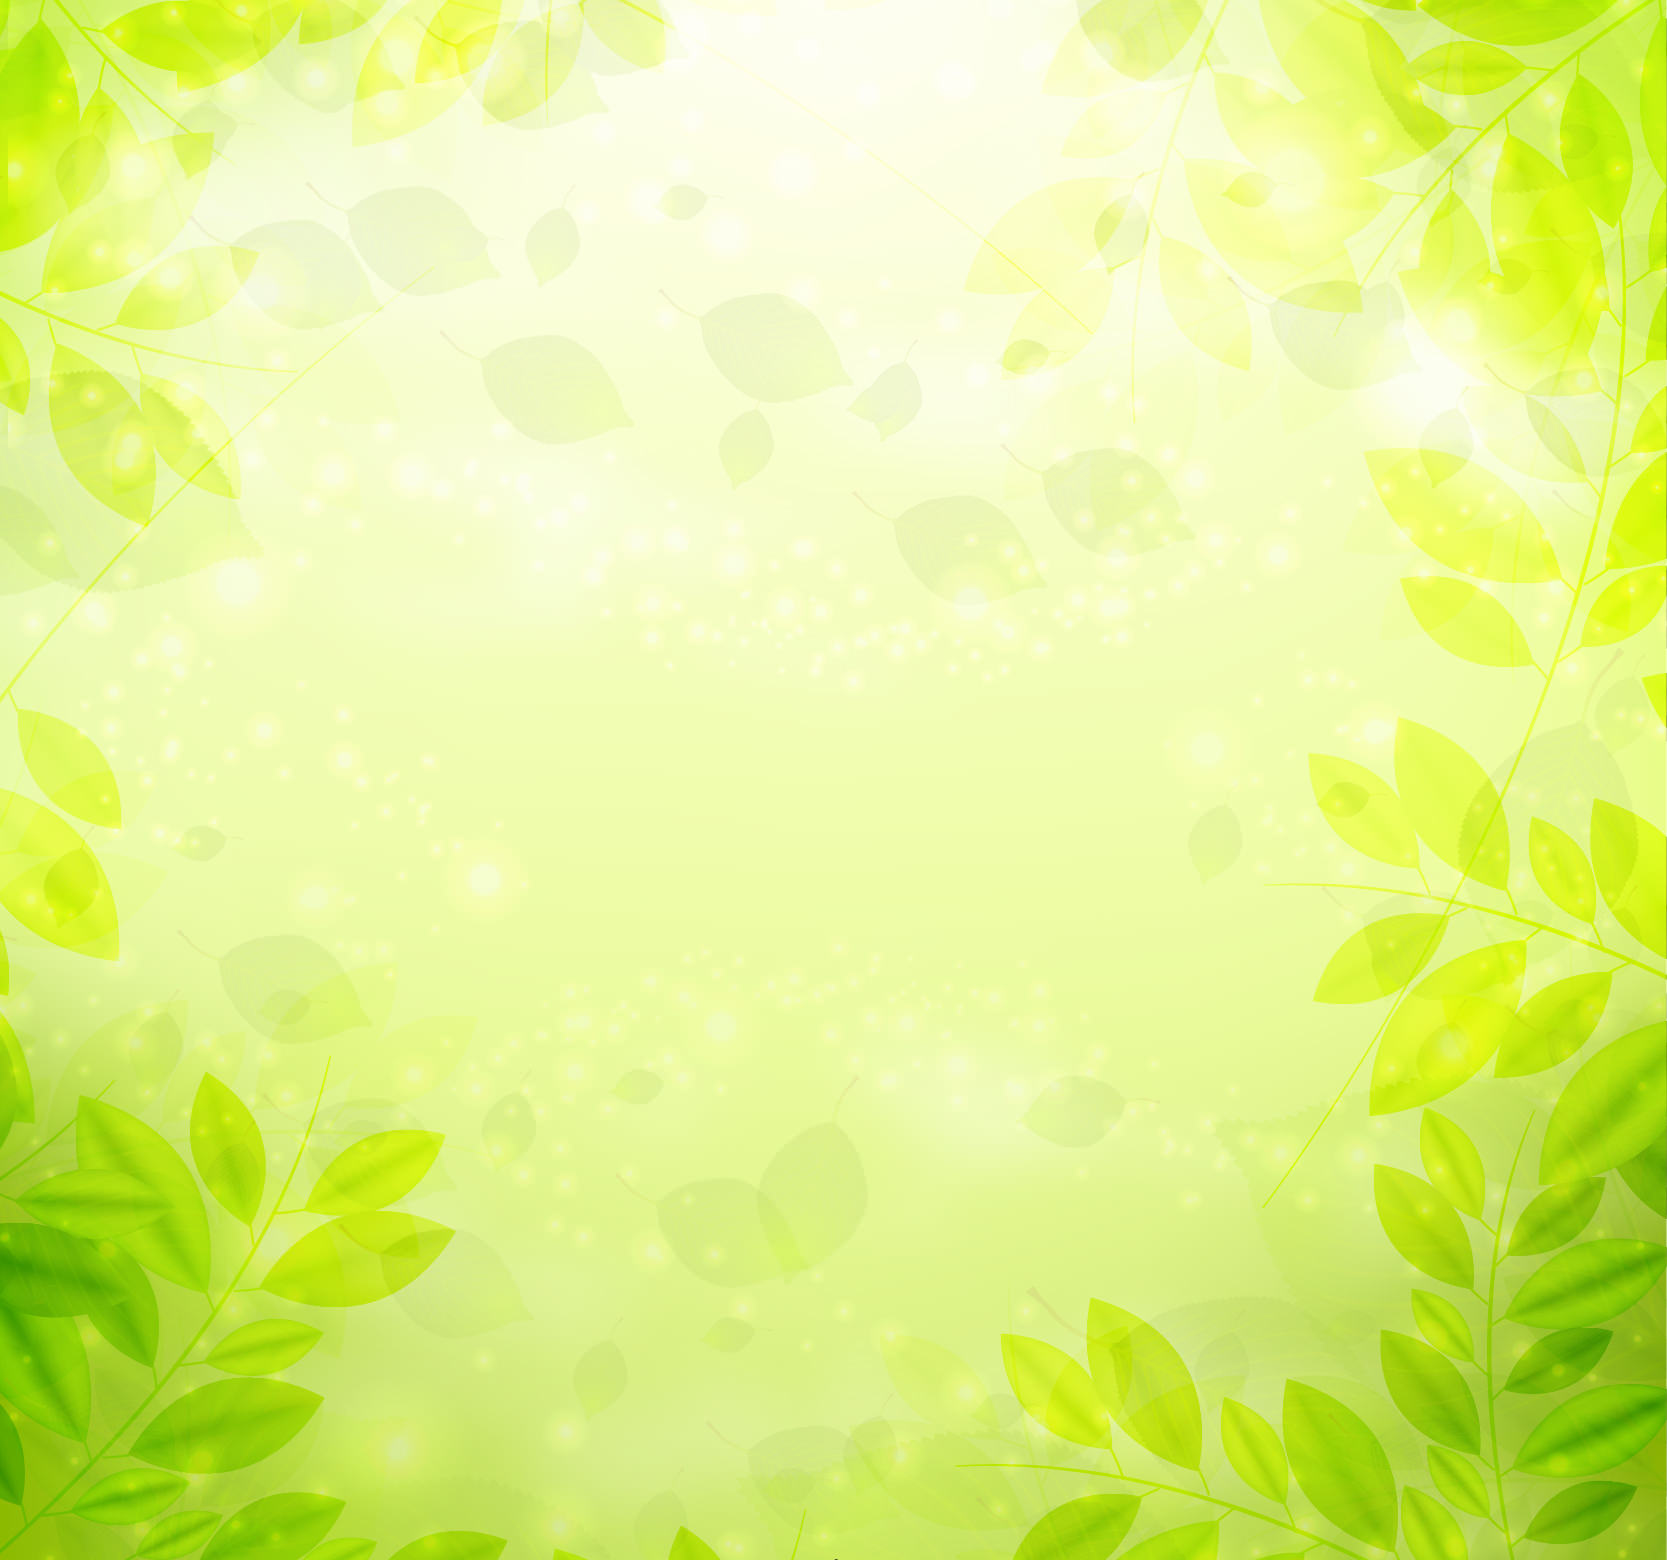 Free Vector Green Leaves Background